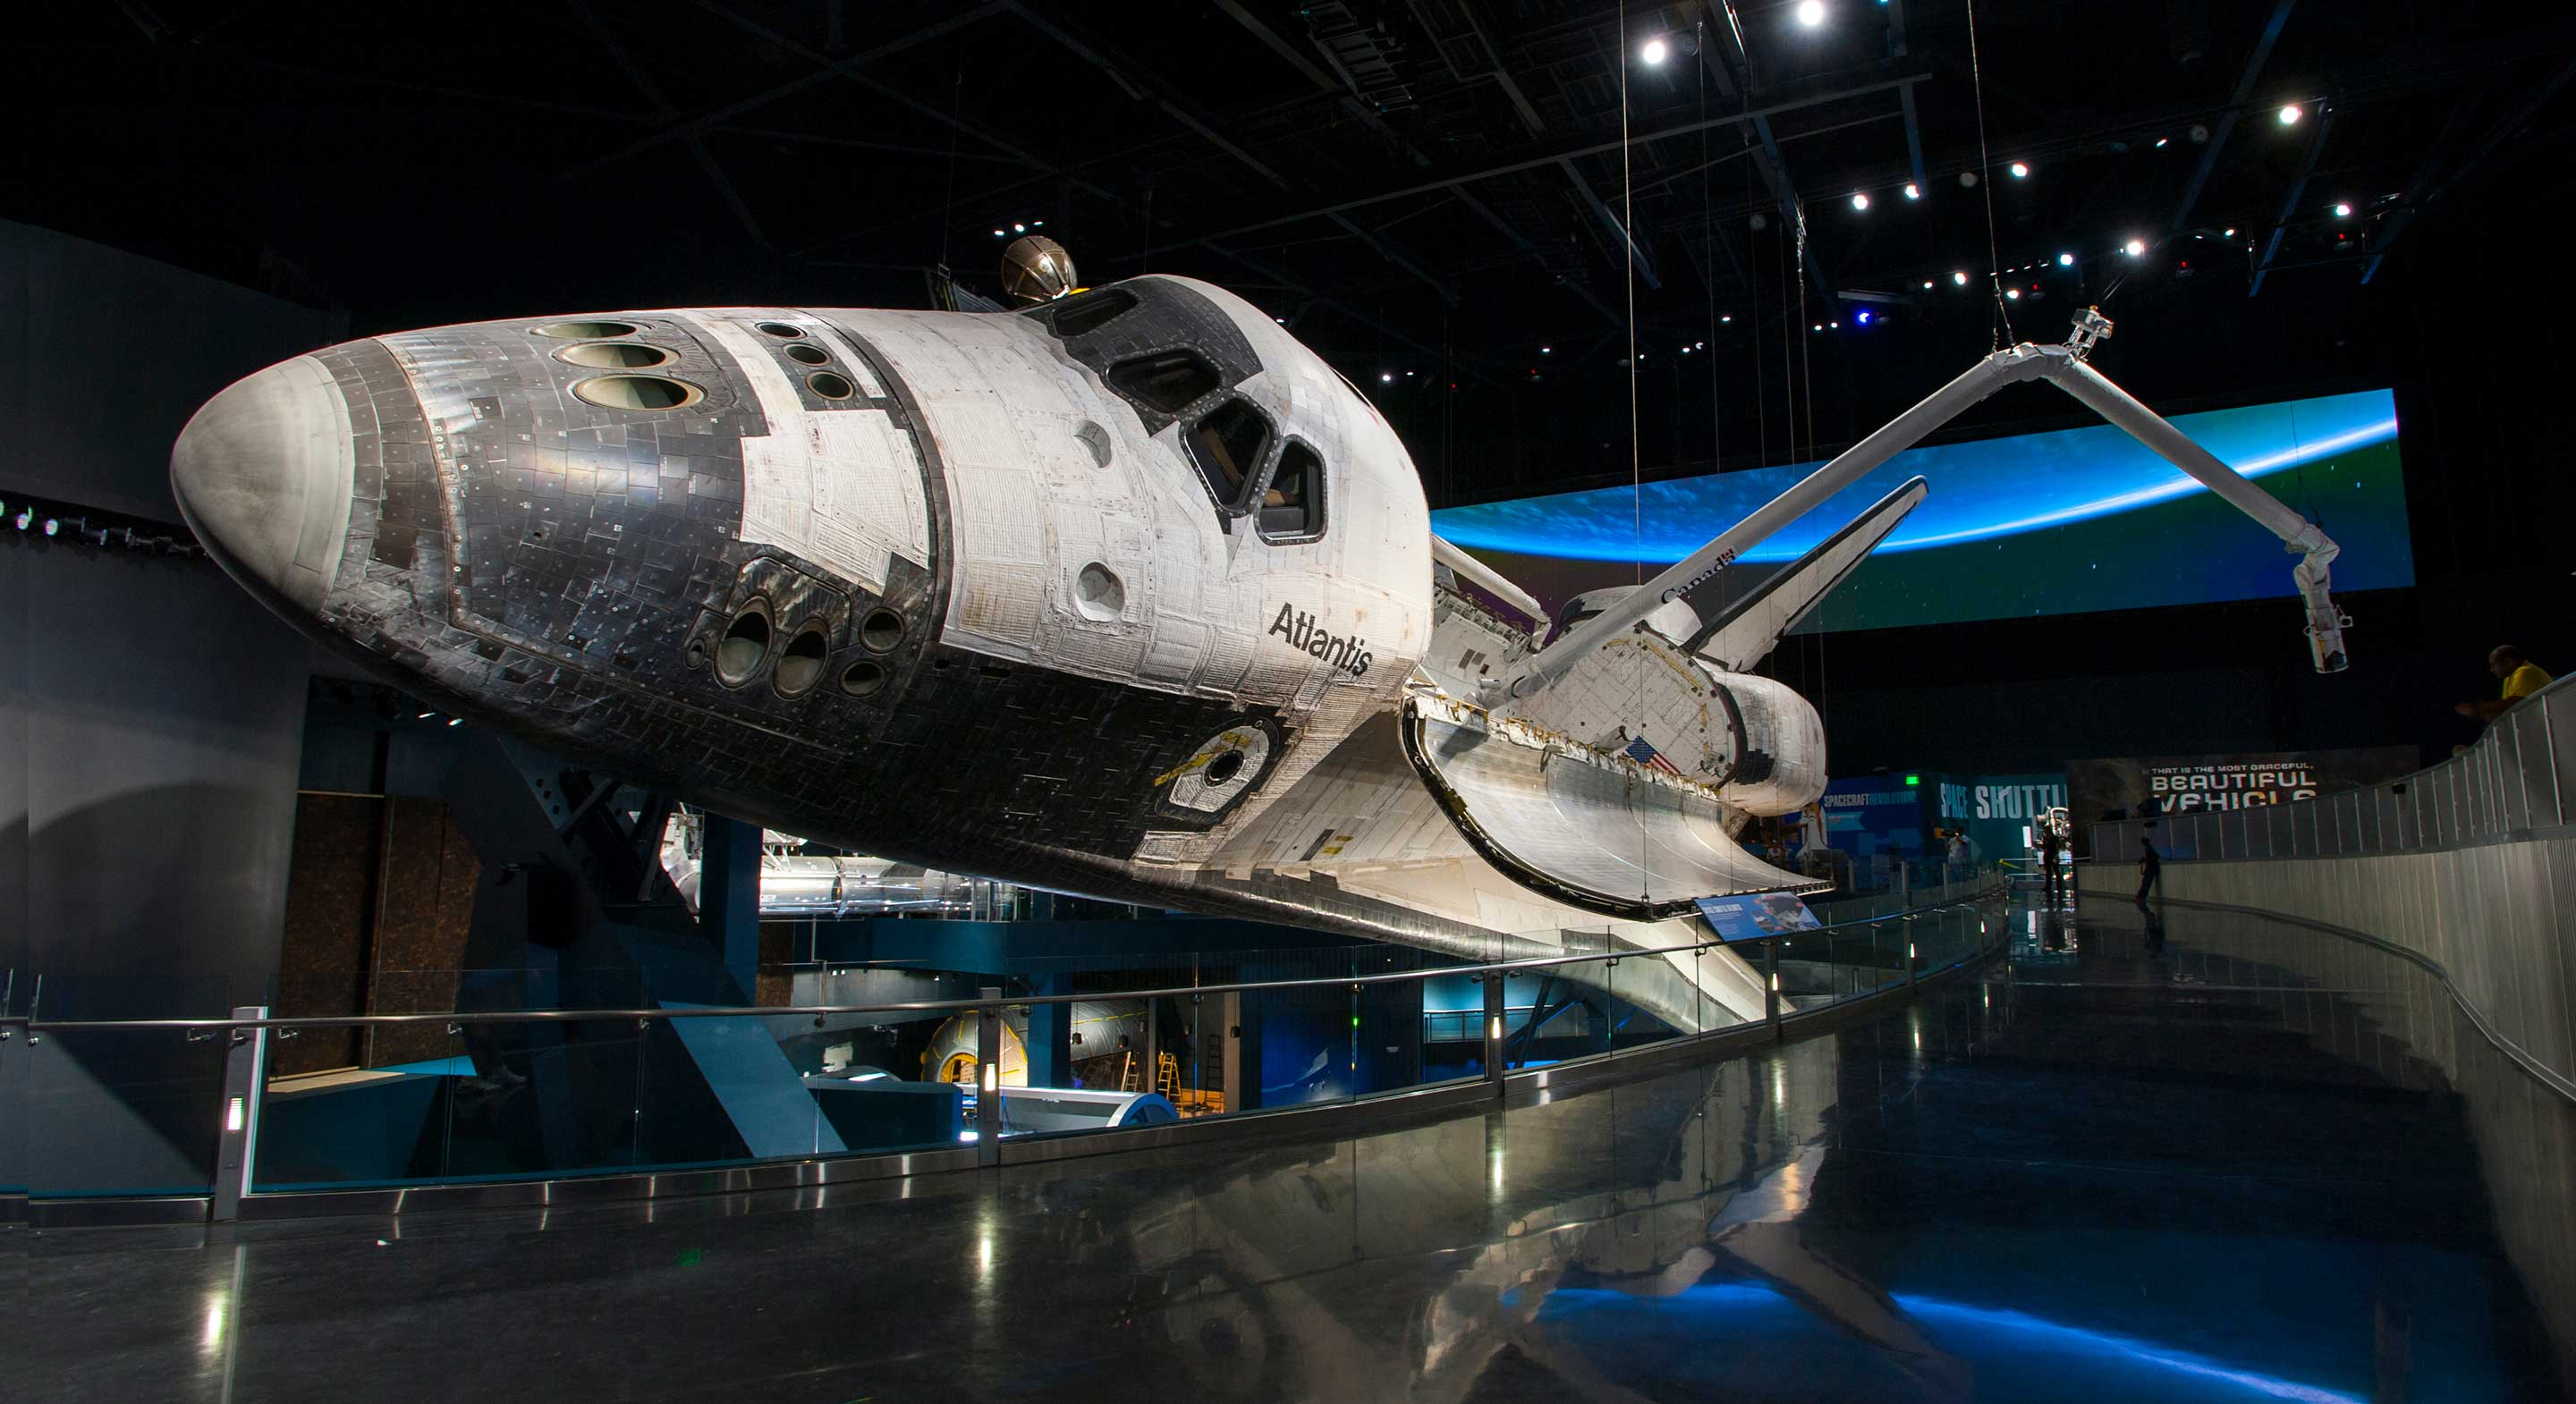 Kennedy-Space-Center-Visitor_Space-Shuttle-Atlantis_2